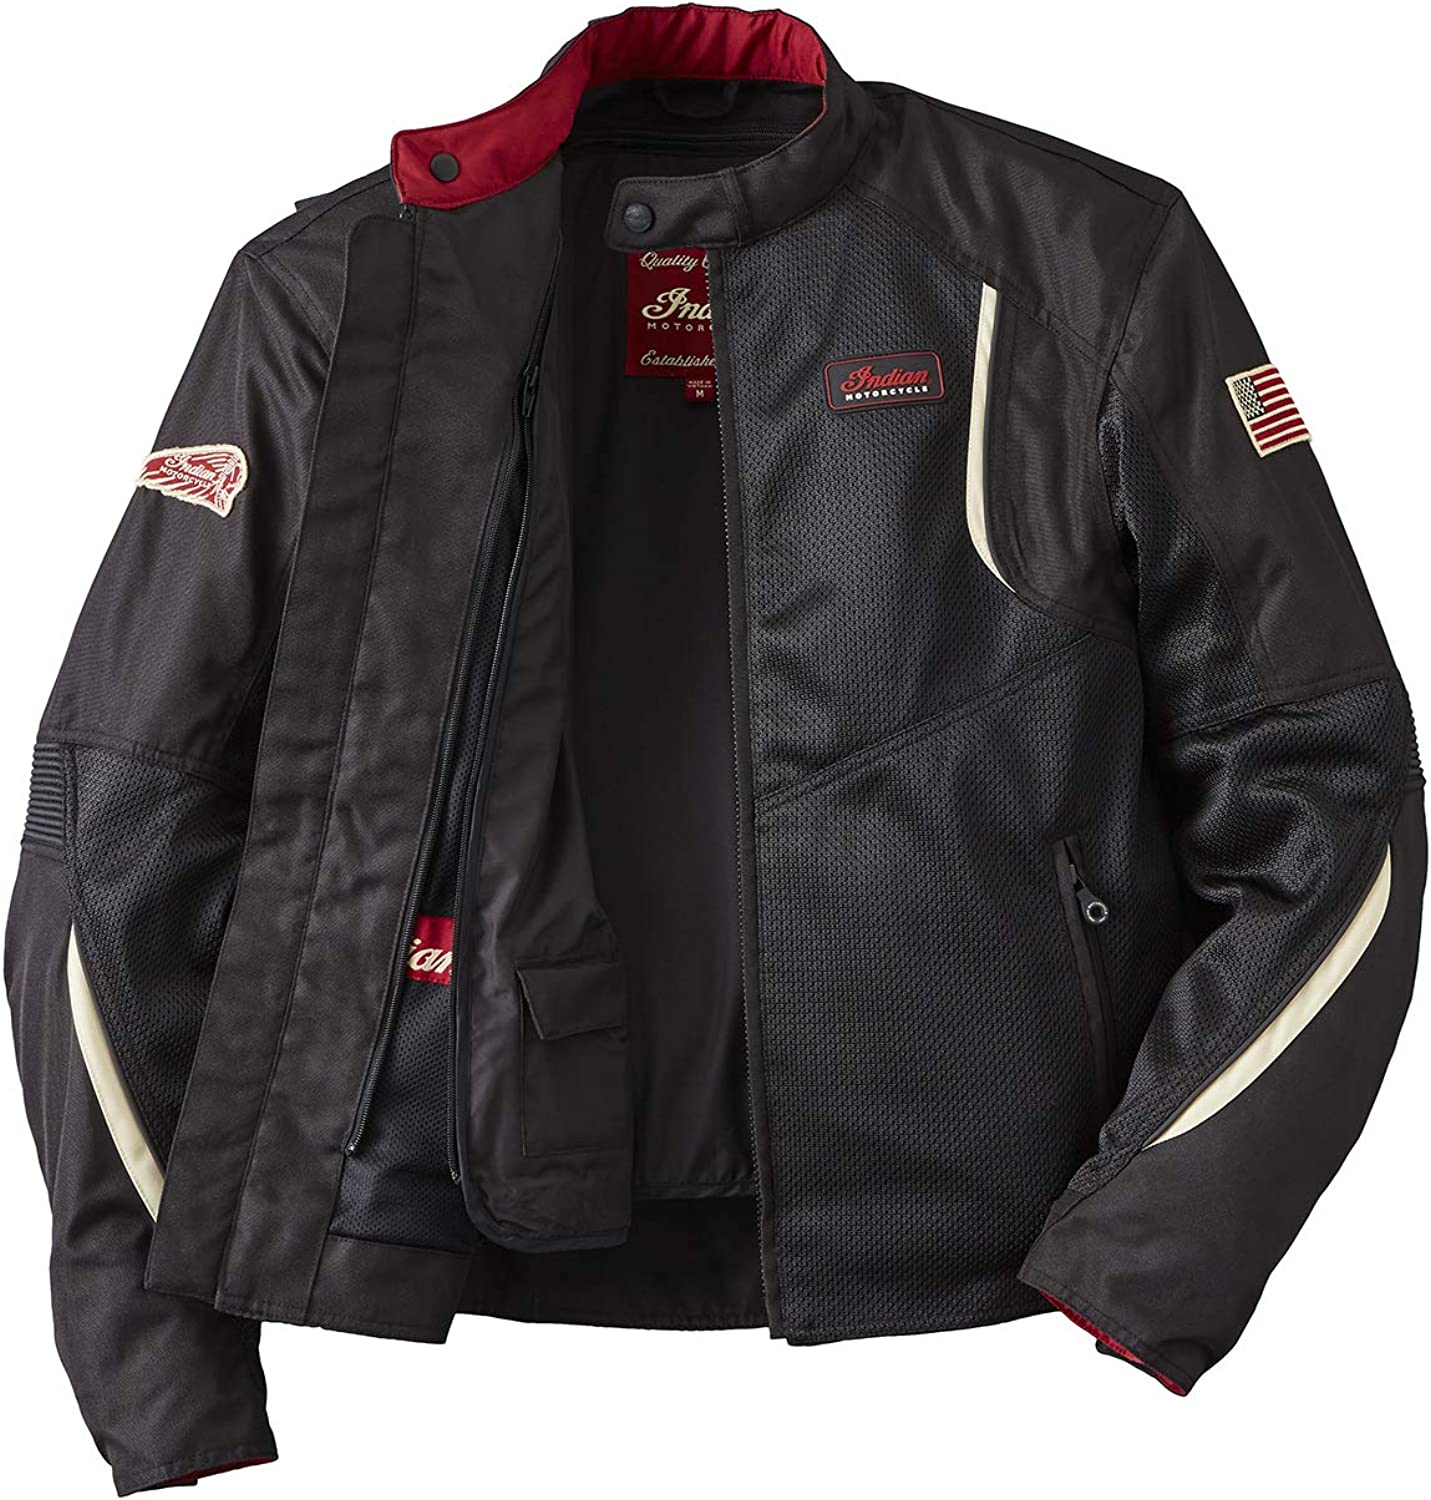 Indian Motorcycle Mens Mesh Springfield 2 Riding Jacket with Removable Lining Black